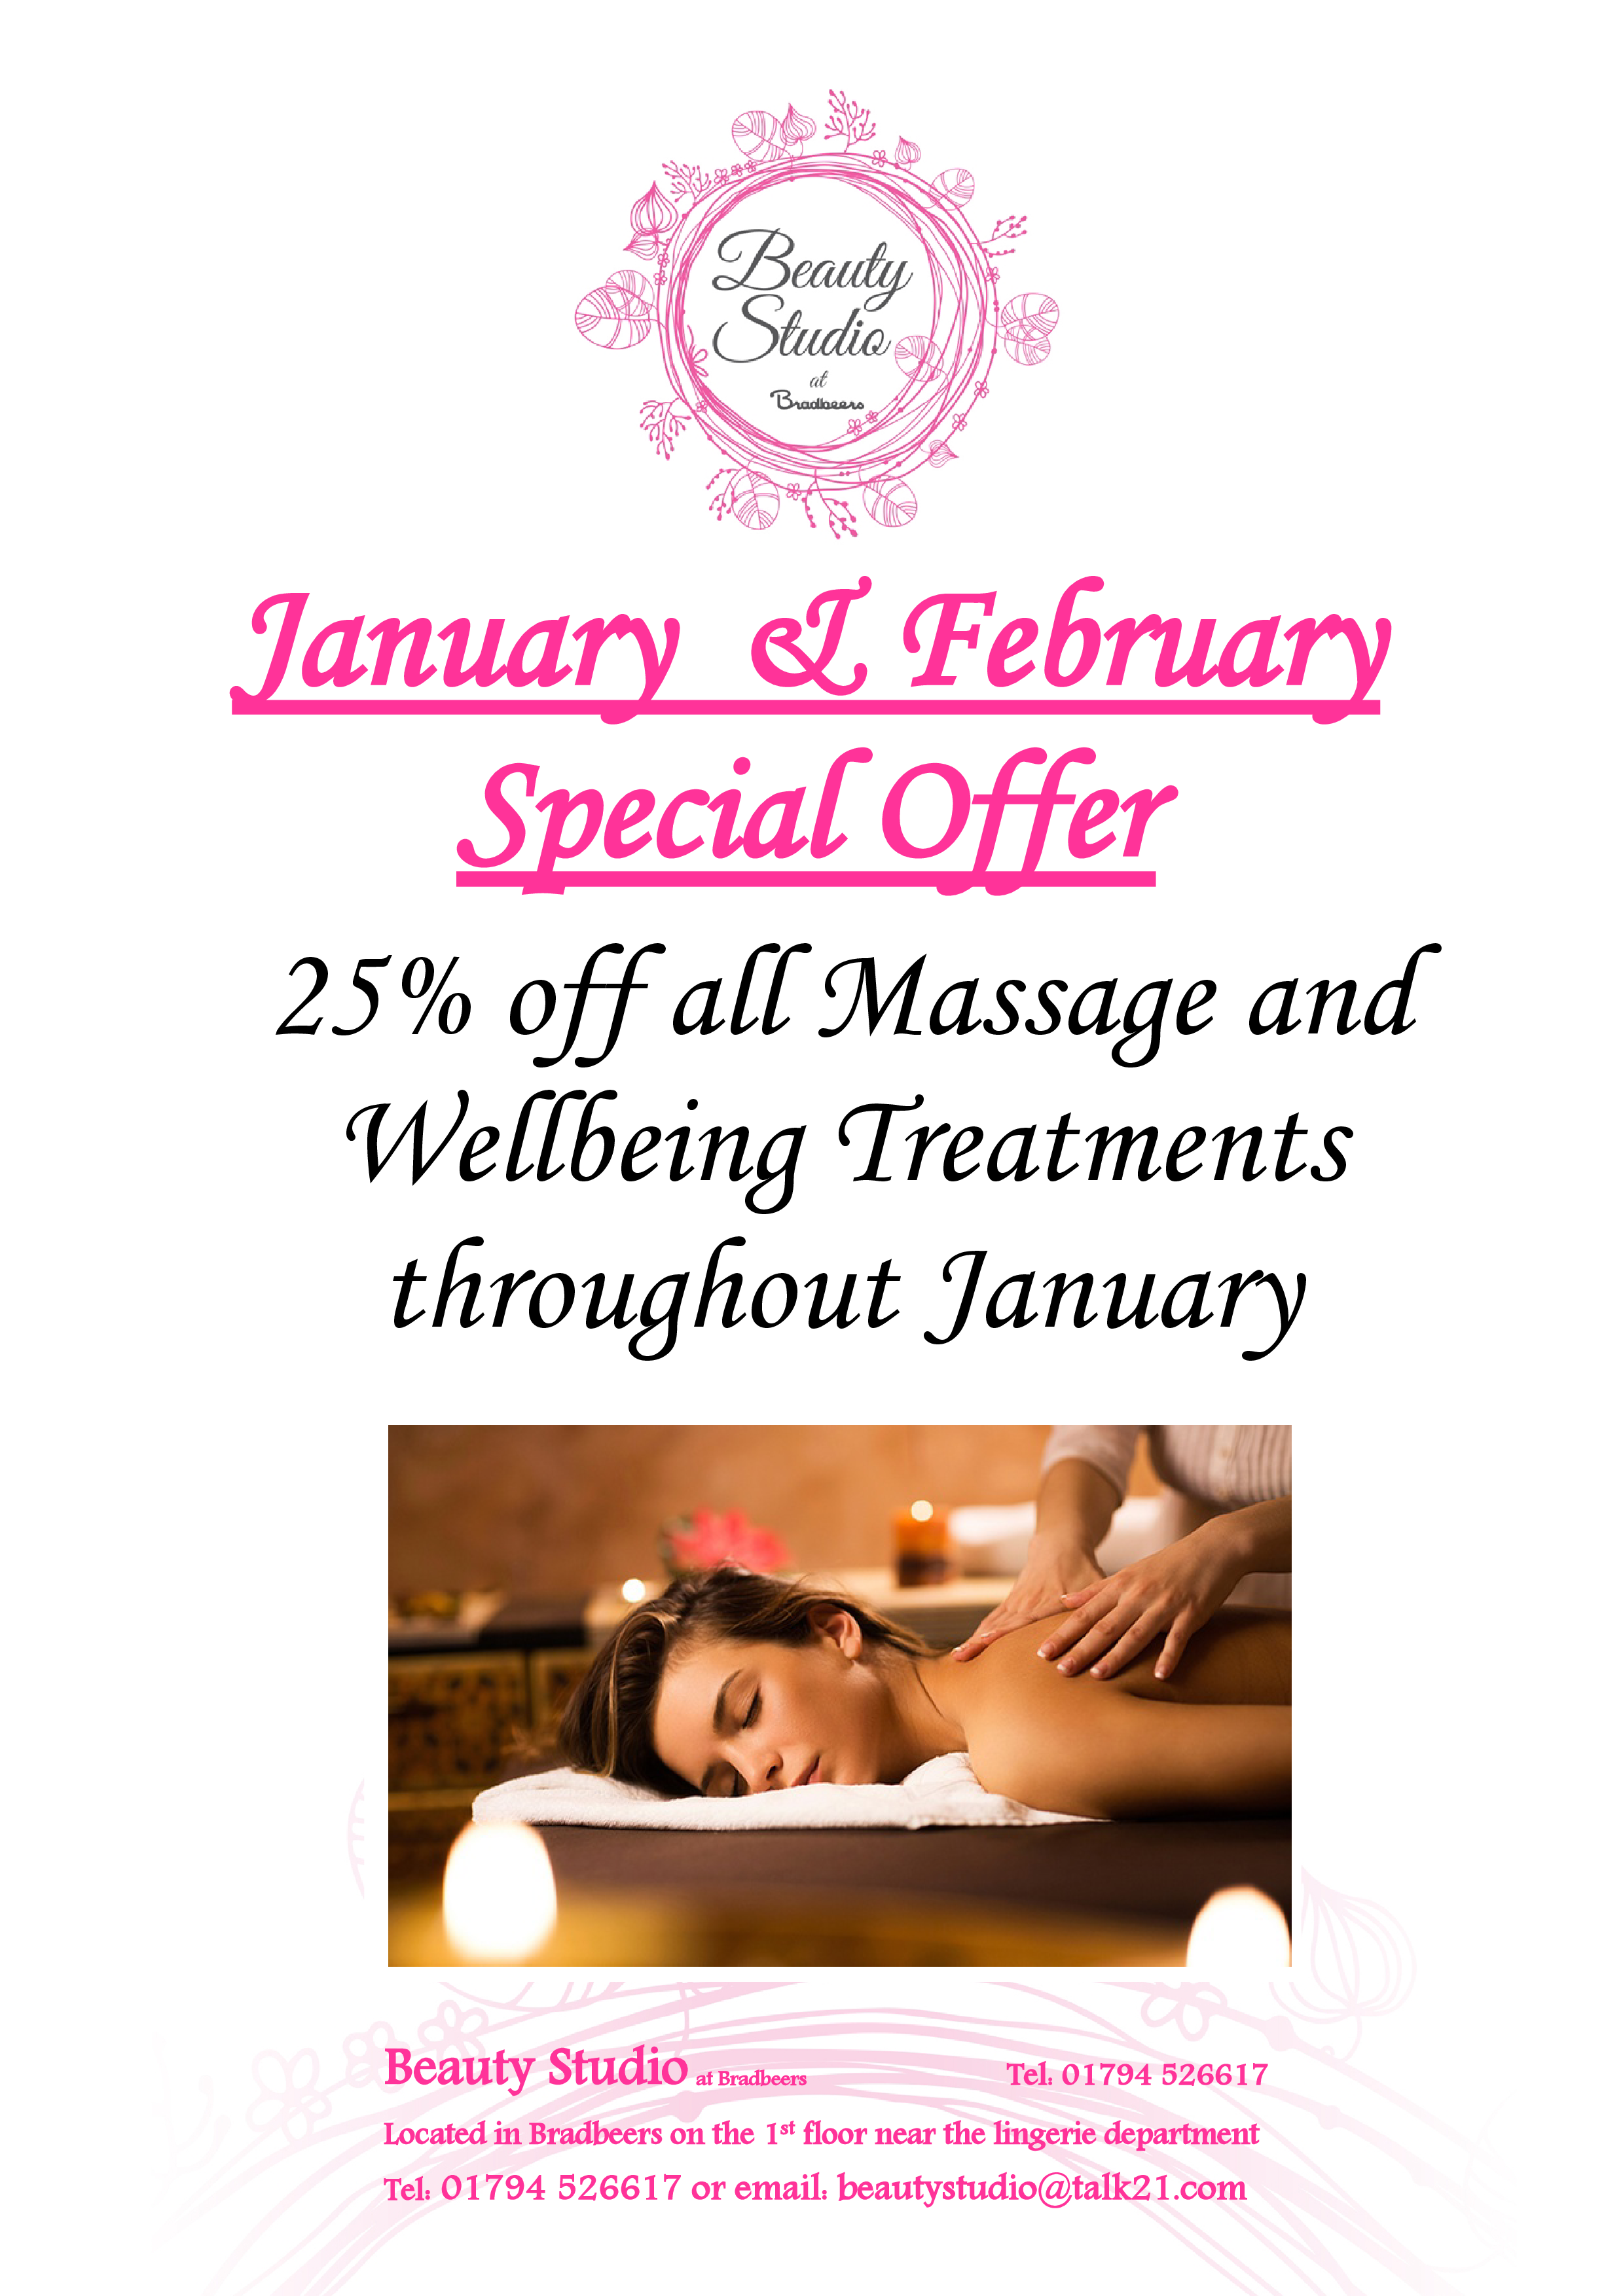 1. January Special Offer (1)